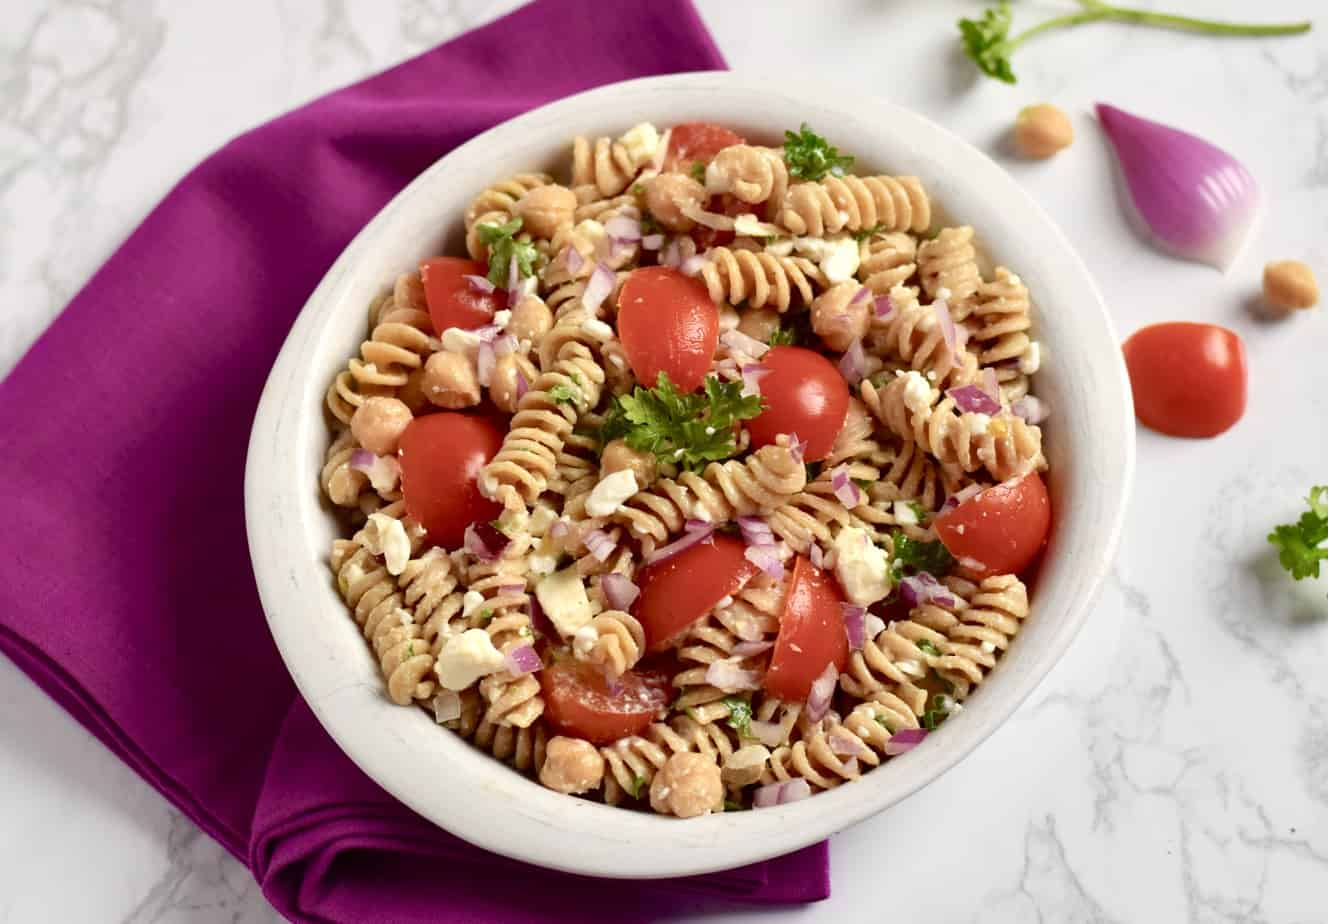 Pasta salad with cottage cheese and chickpeas.